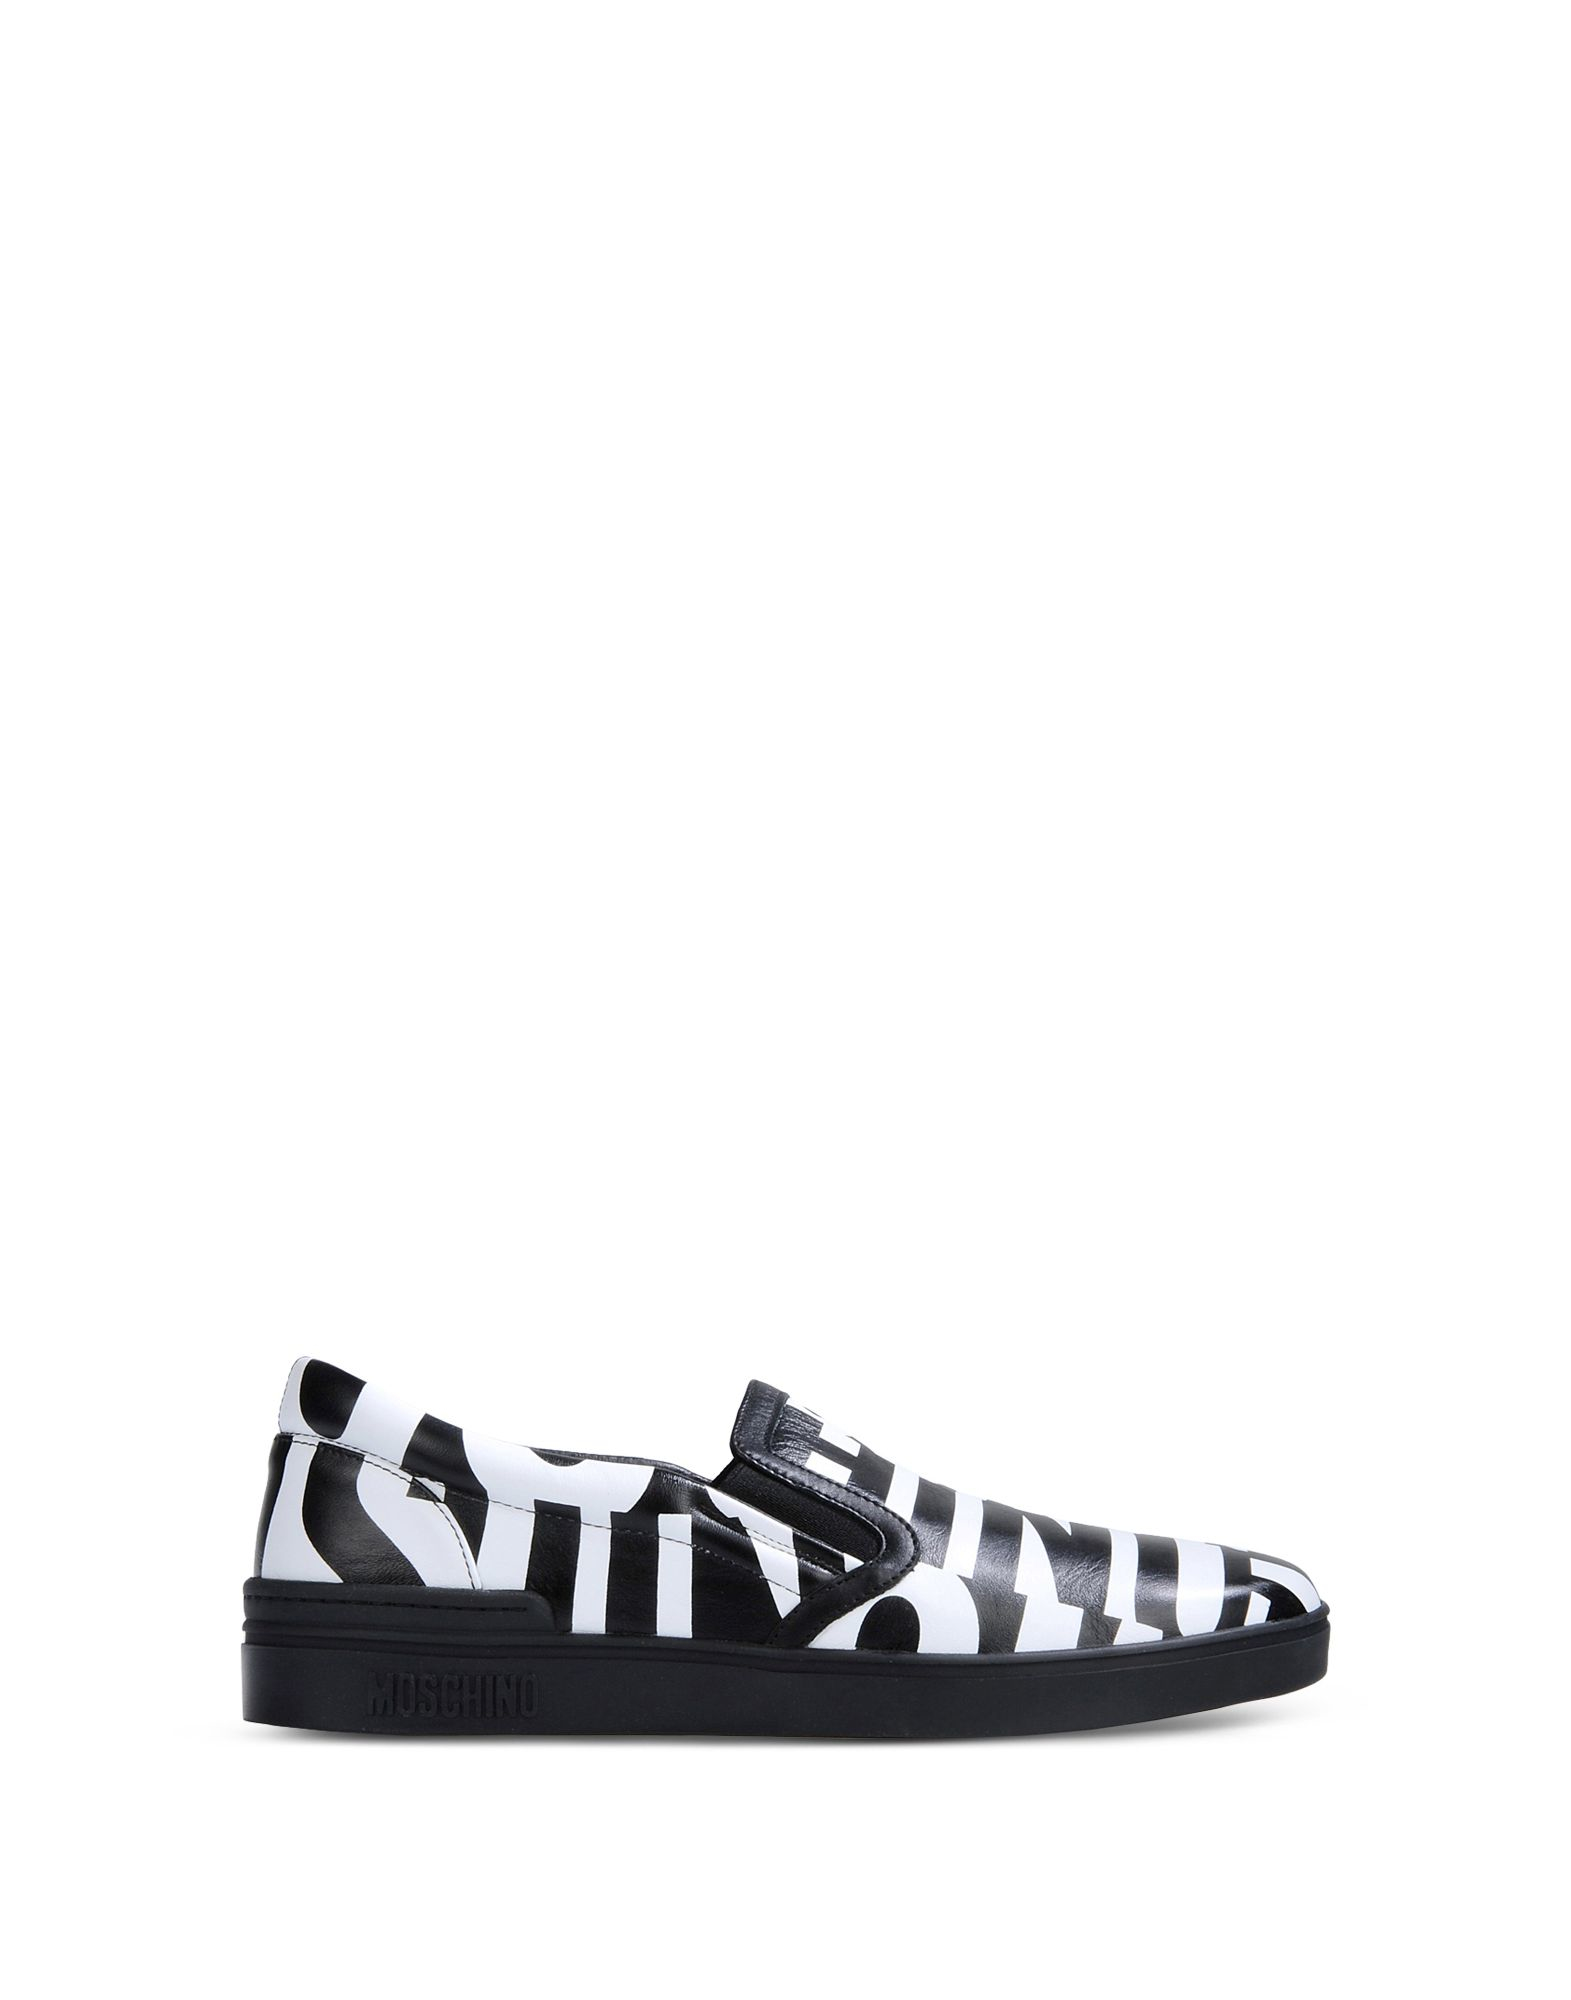 Moschino Moccasins in Black for Men